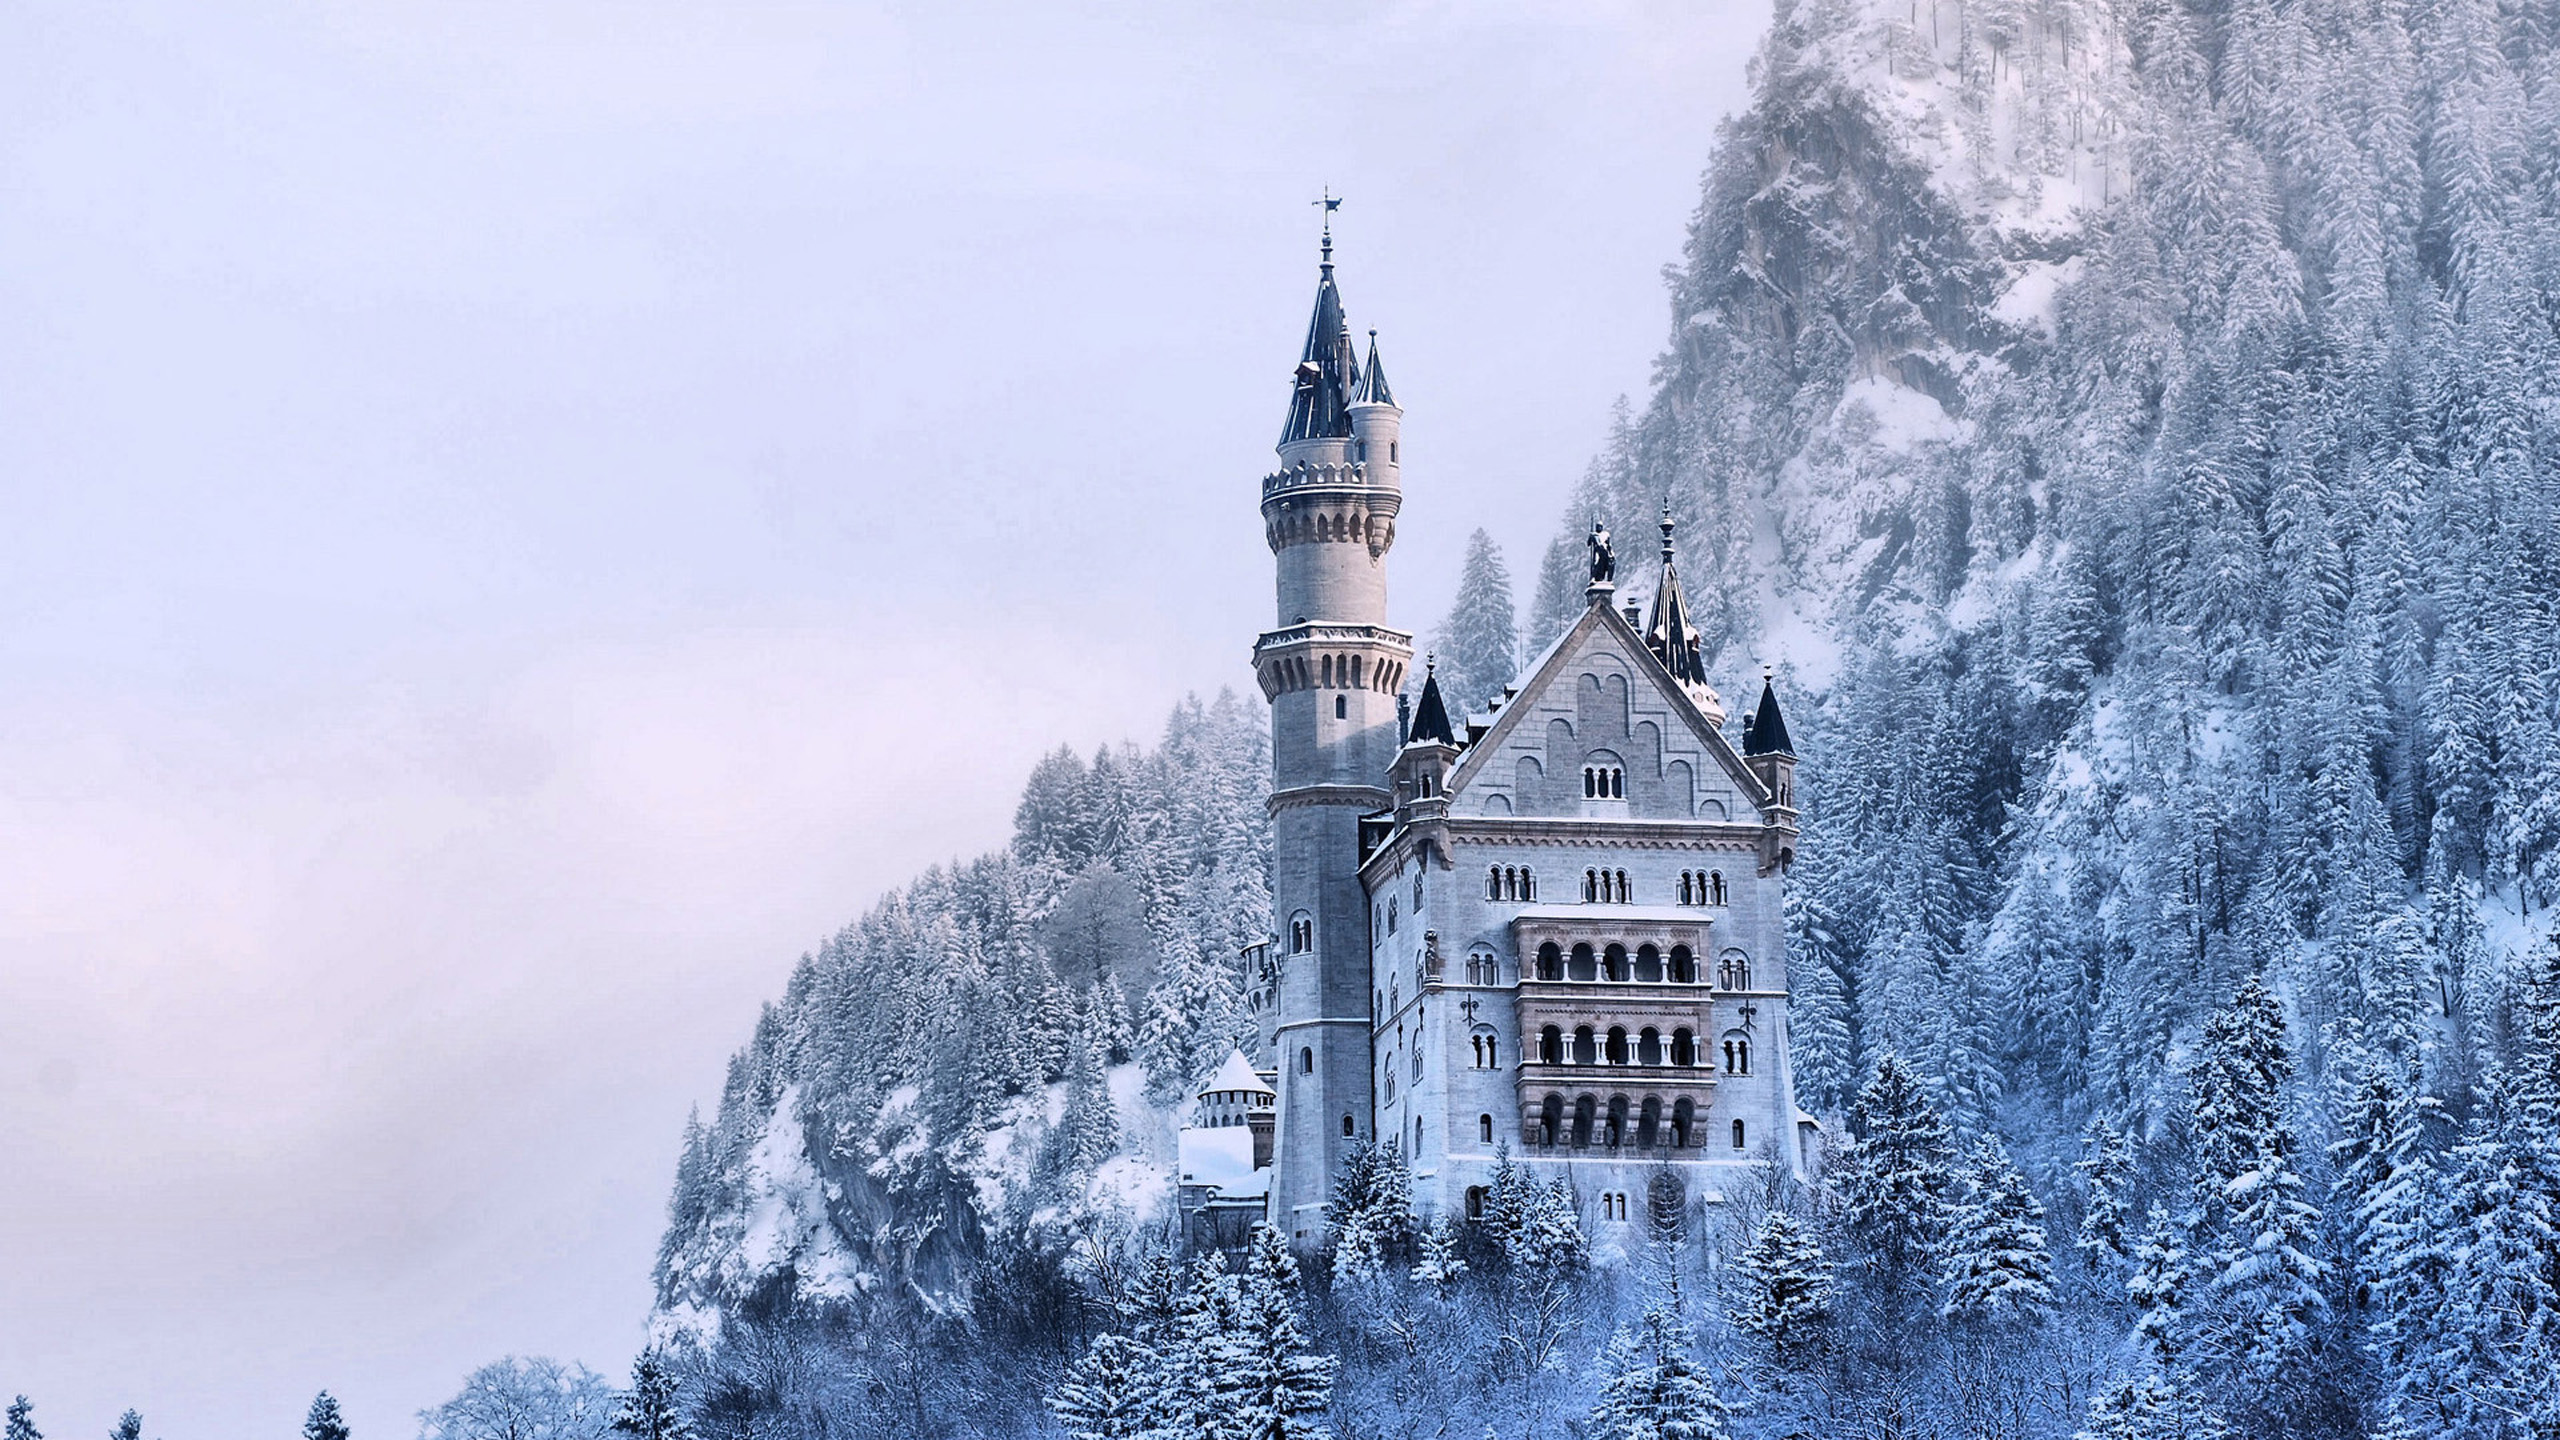 Frozen Neuschwanstein Castle Wallpapers 2560x1440